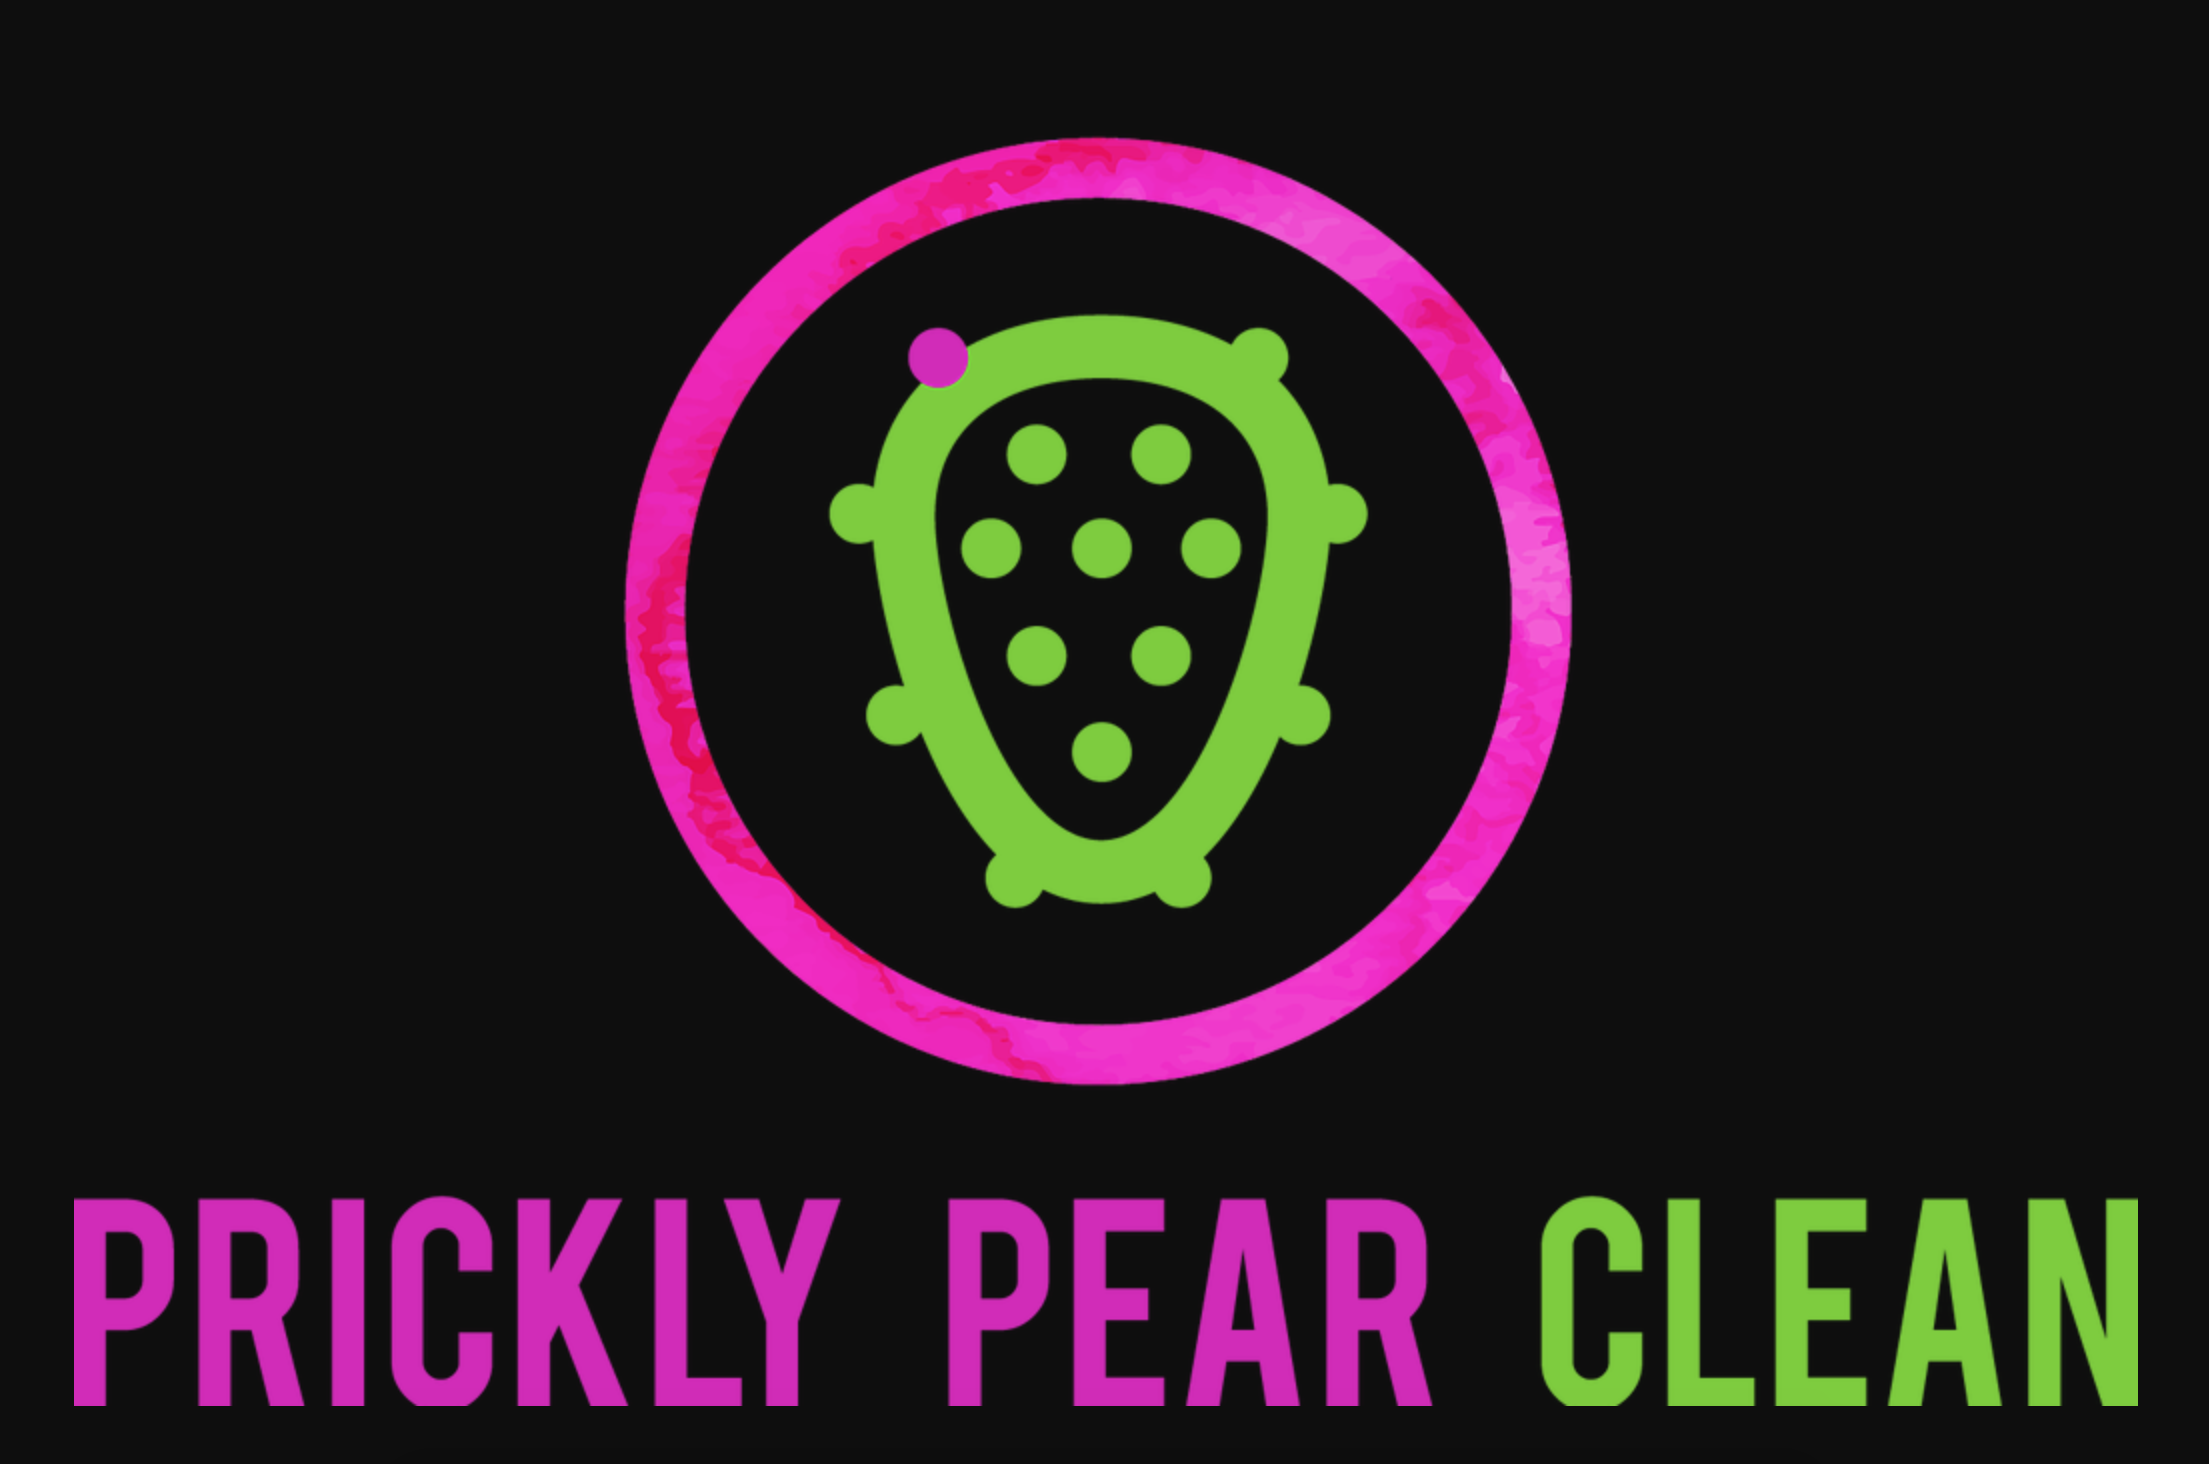 July Business of the Month: Prickly Pear Clean